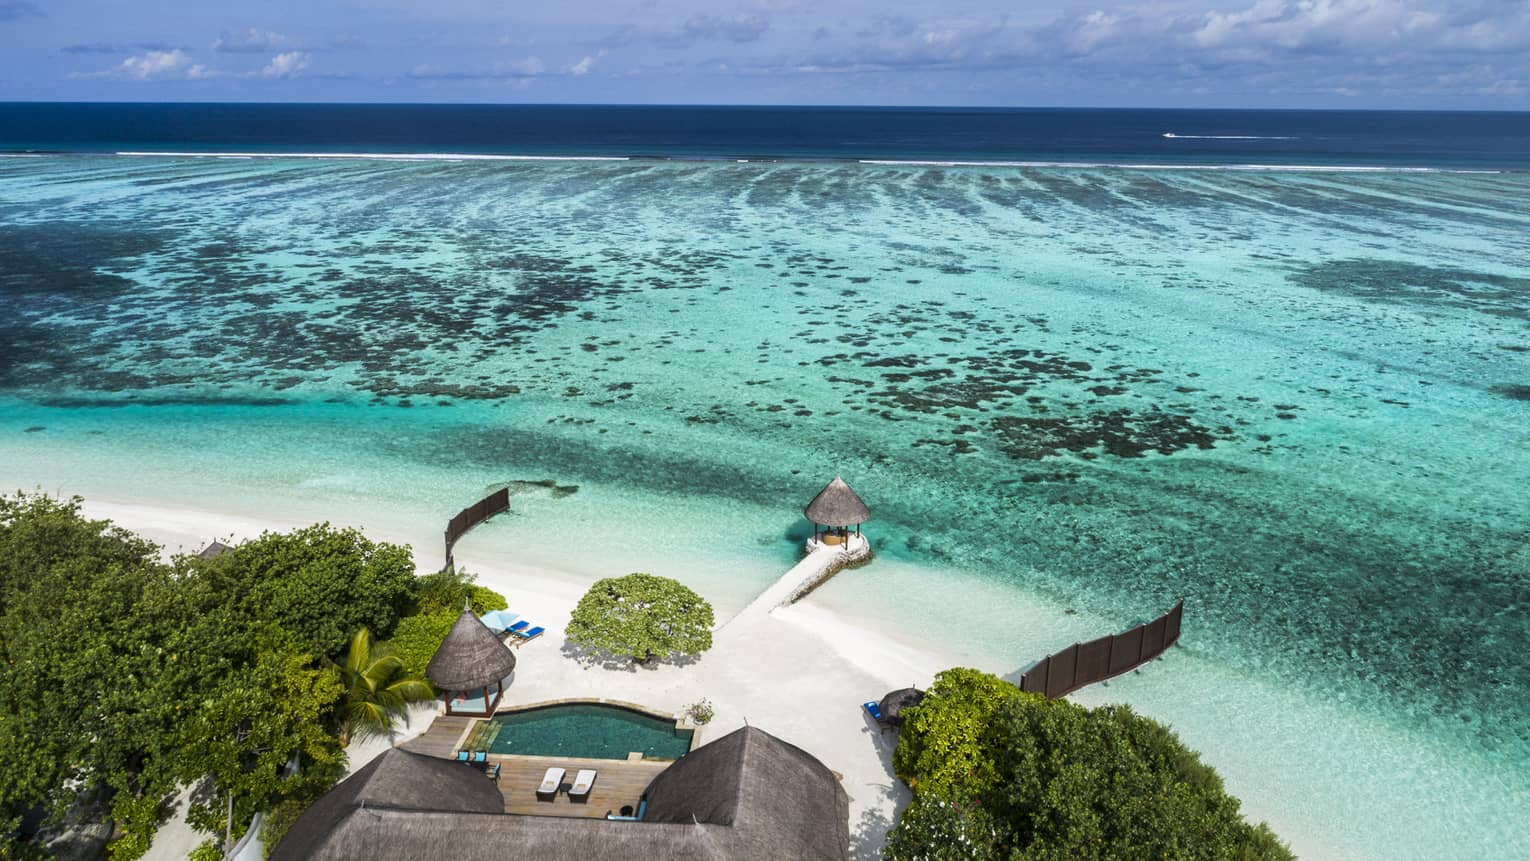 Aerial view of the Two-Bedroom Royal Beach Villa and its private beach in the Maldives